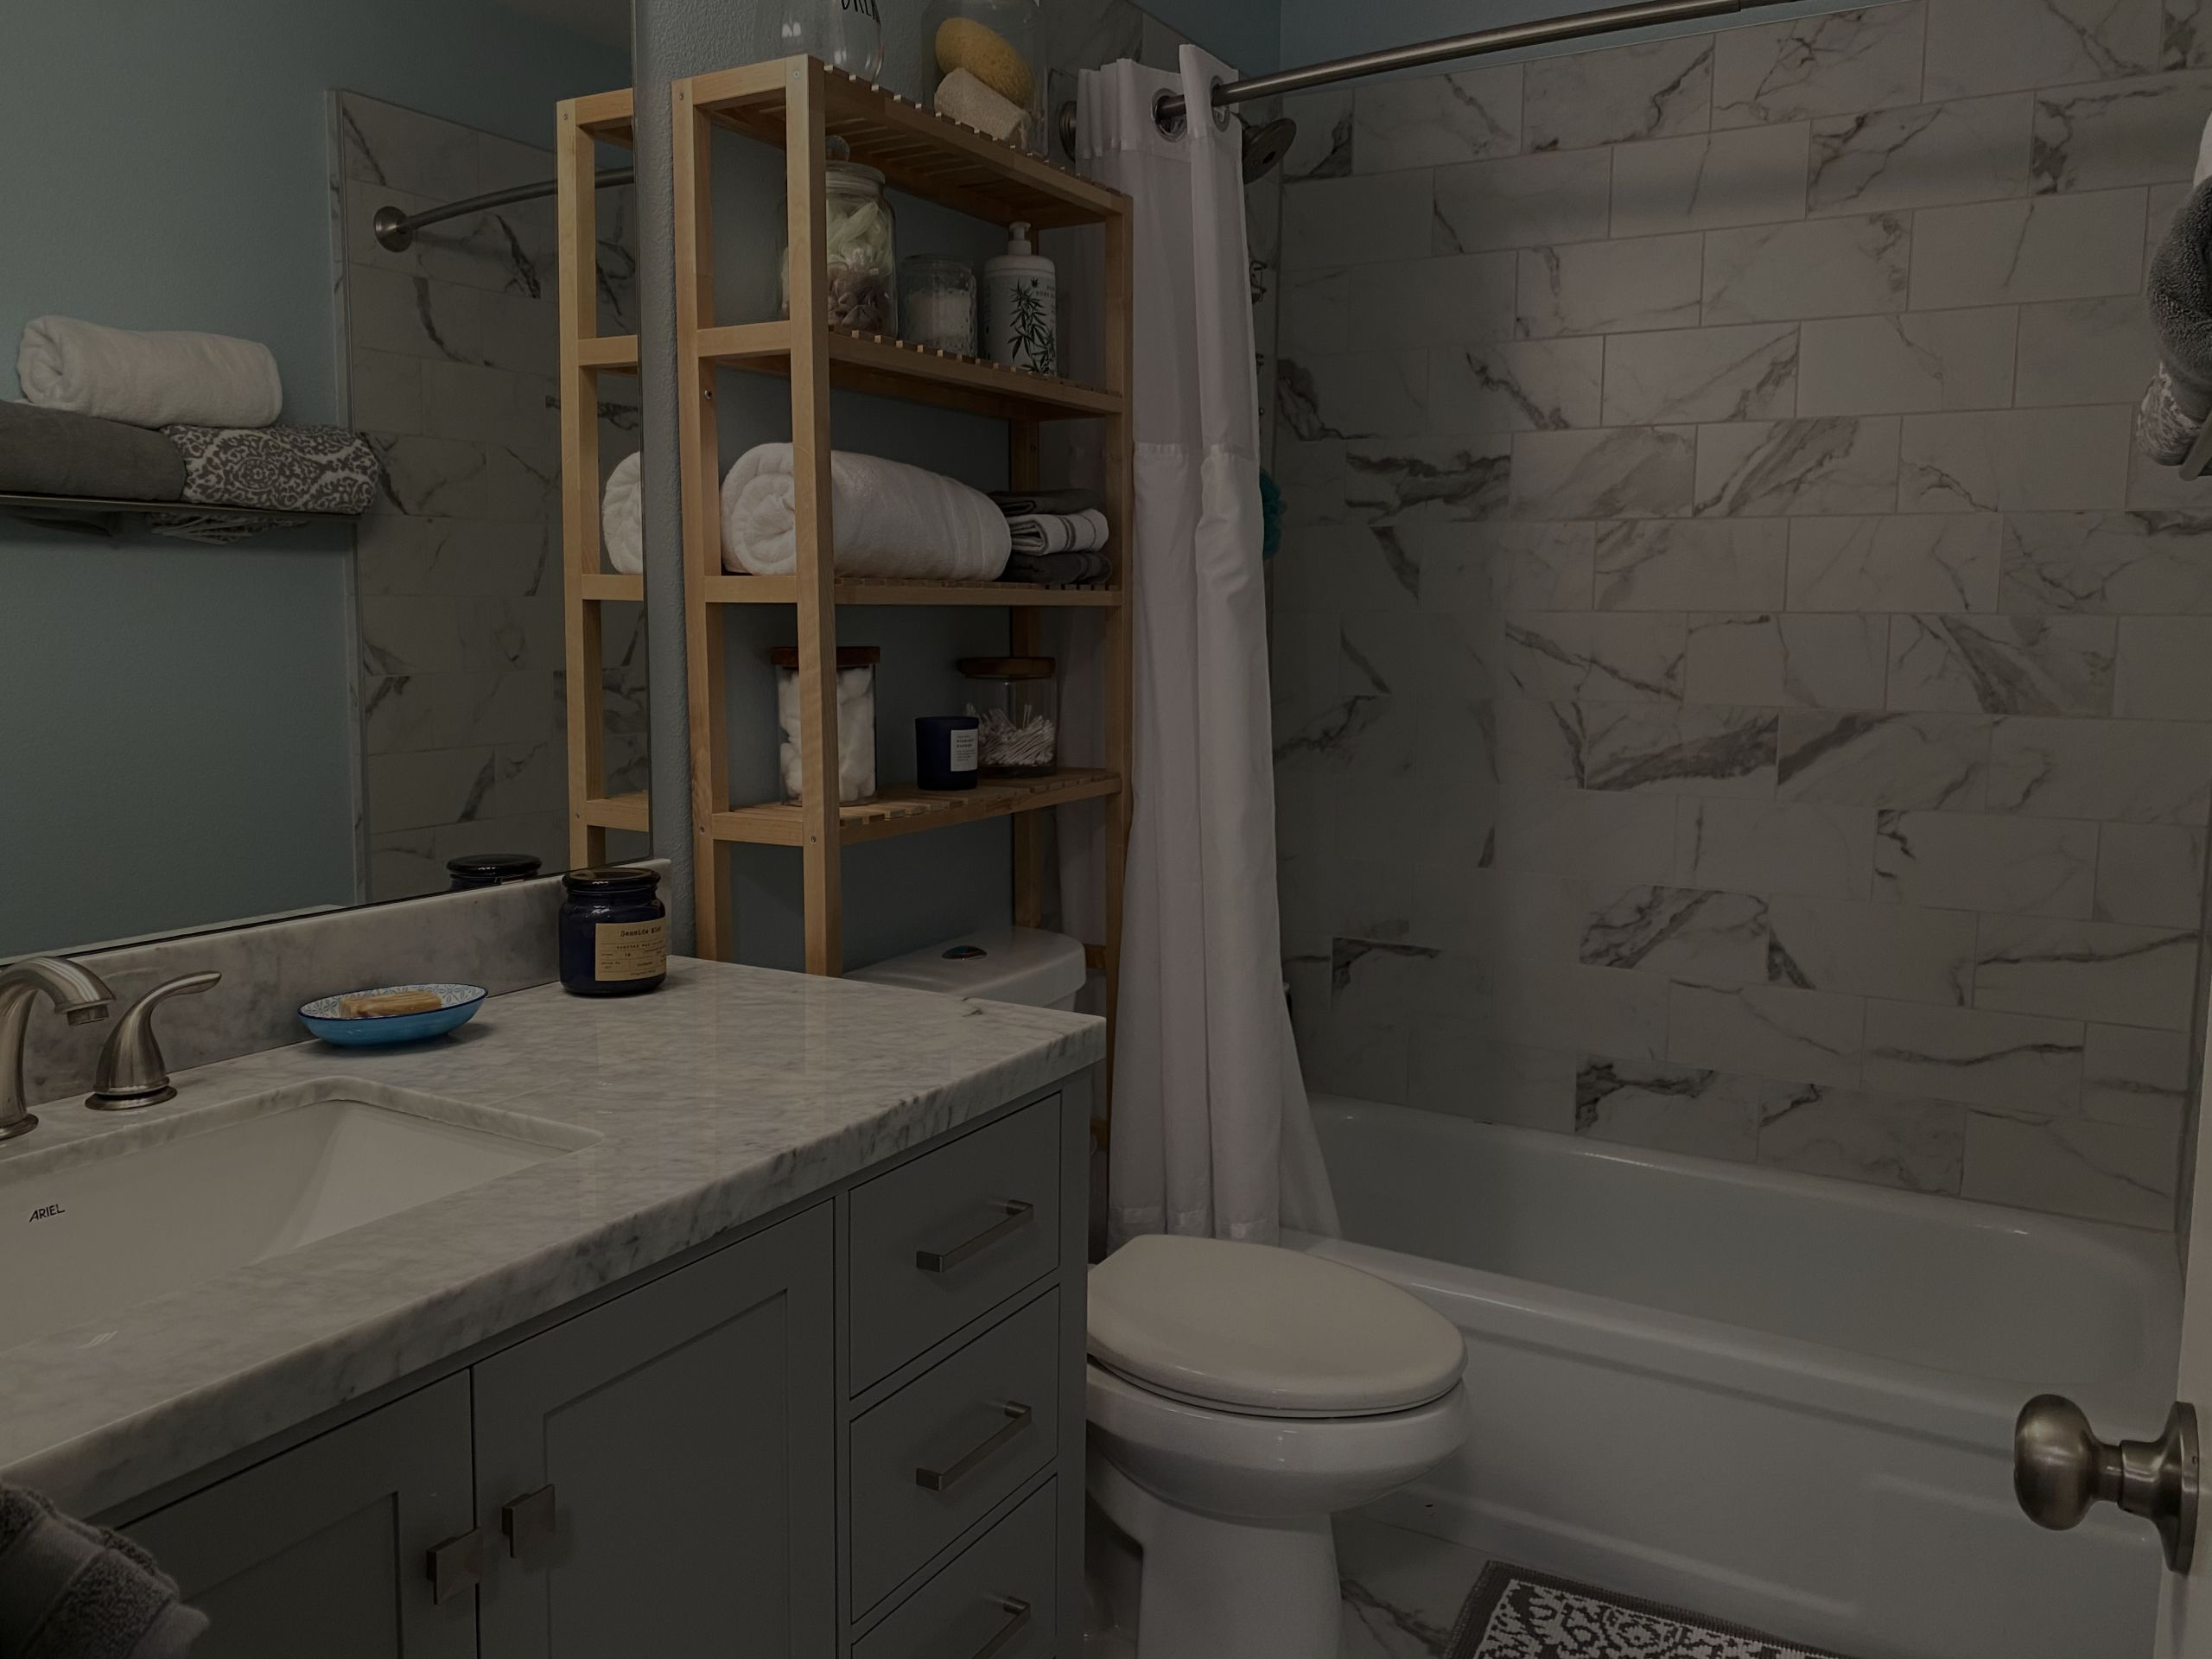 2nd full bath remodeled with family in mind